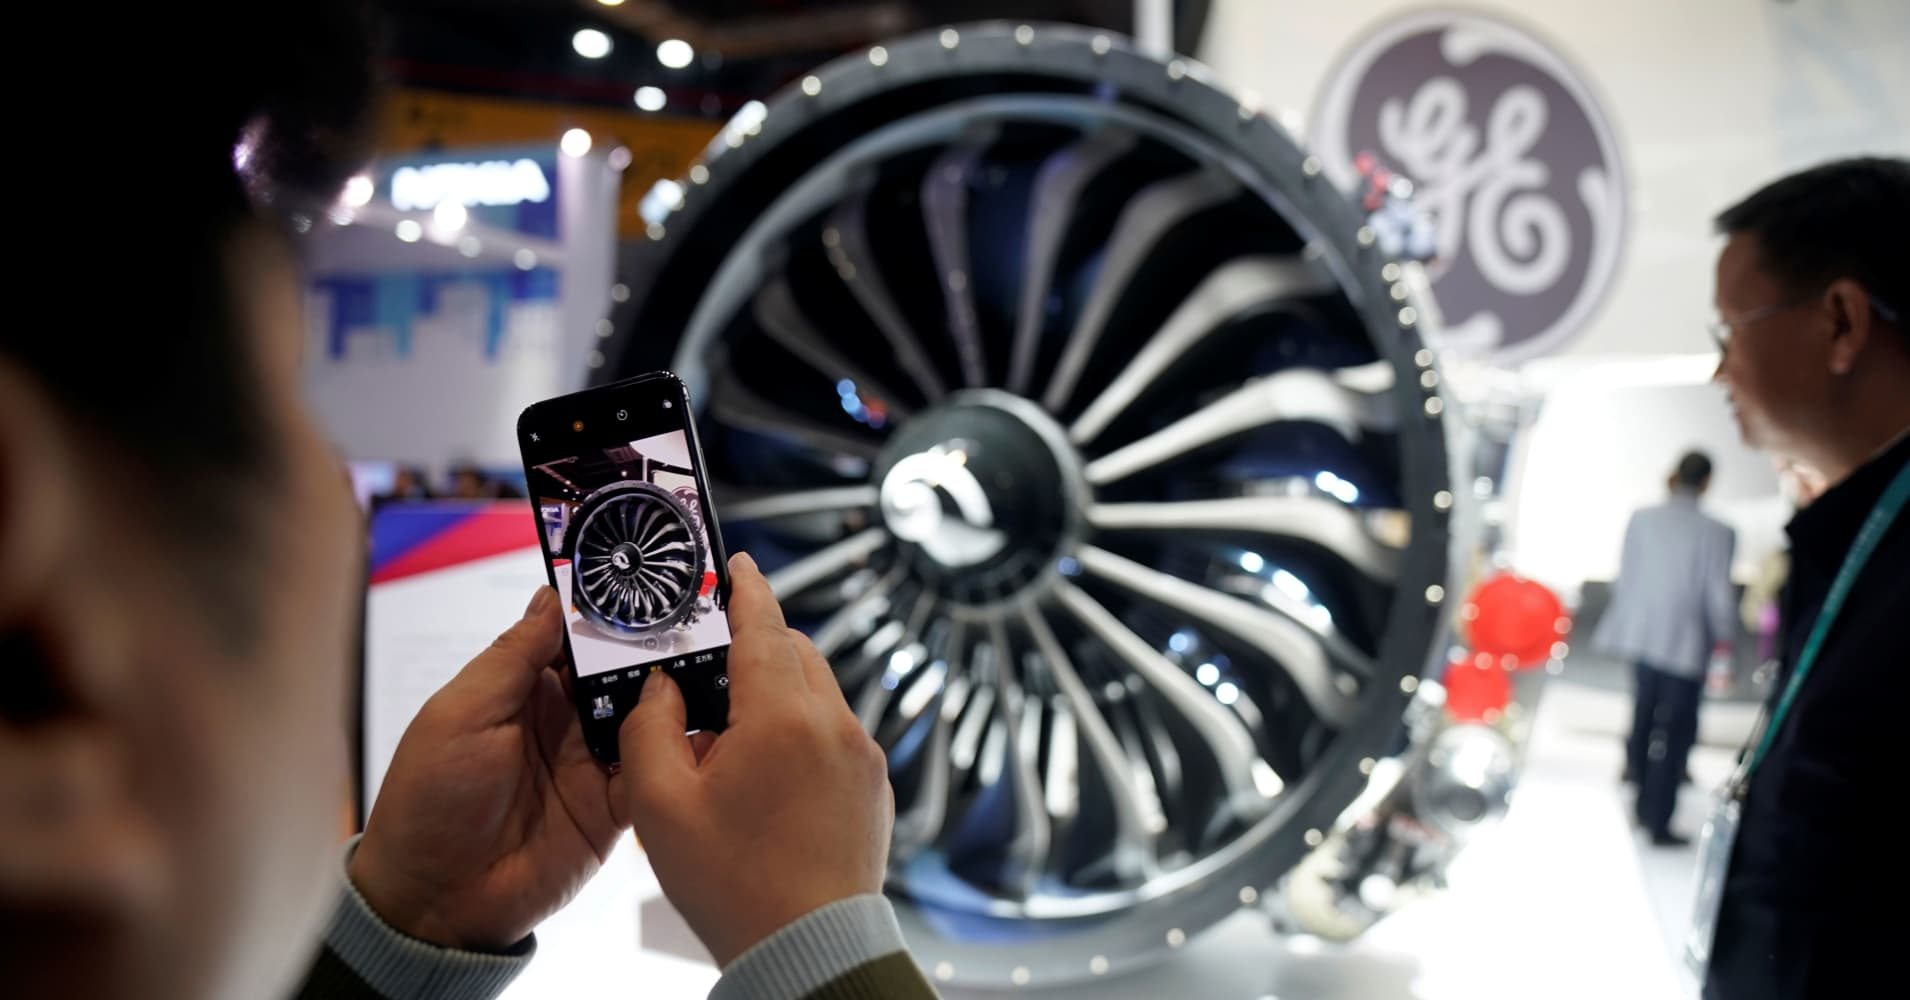 GE shares surge 12% after JP Morgan analyst who called their decline says the bottom is near